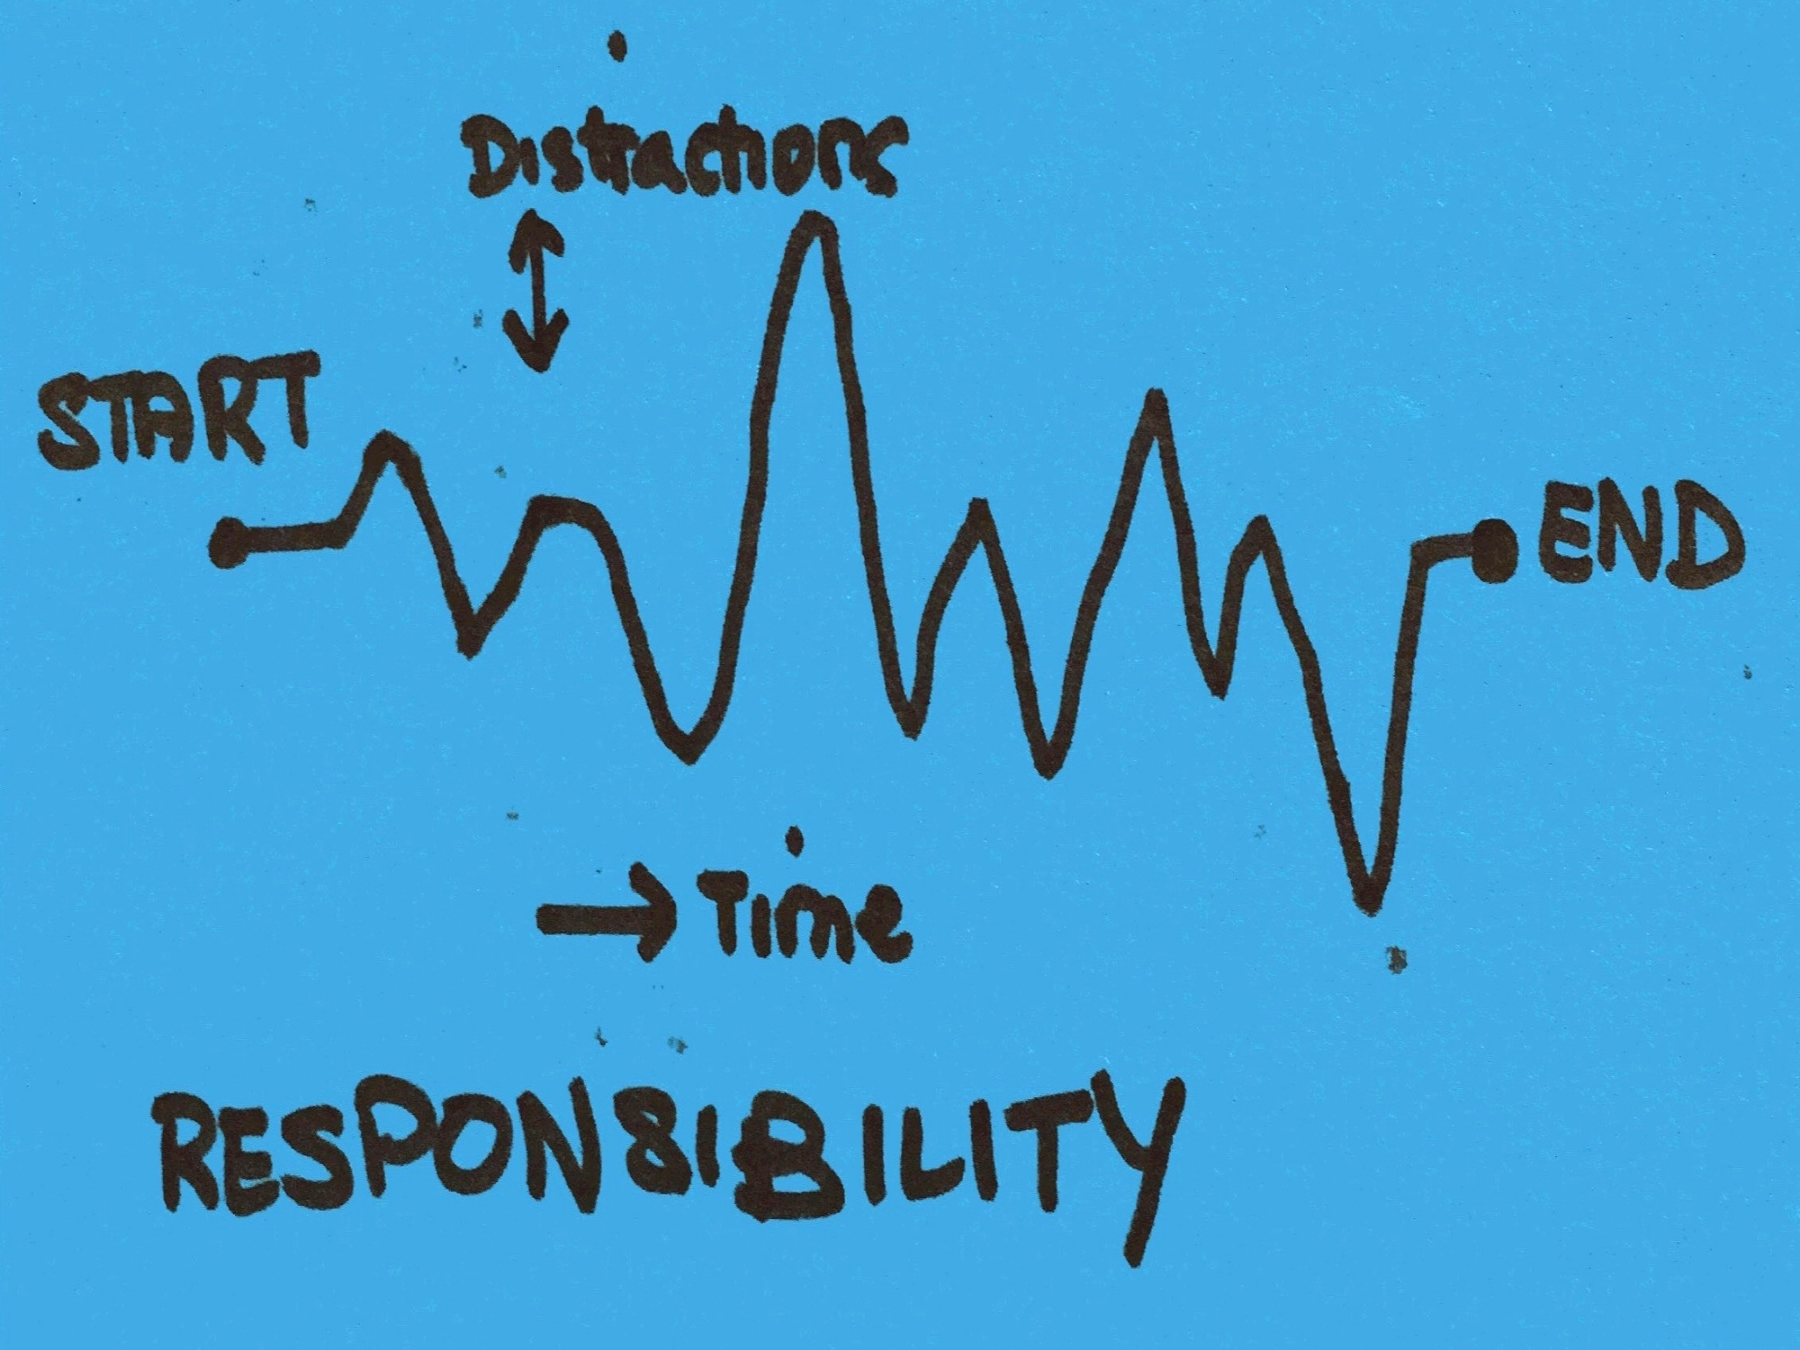 Responsibility Strengthsfinder Singapore Completion Amid Distractions